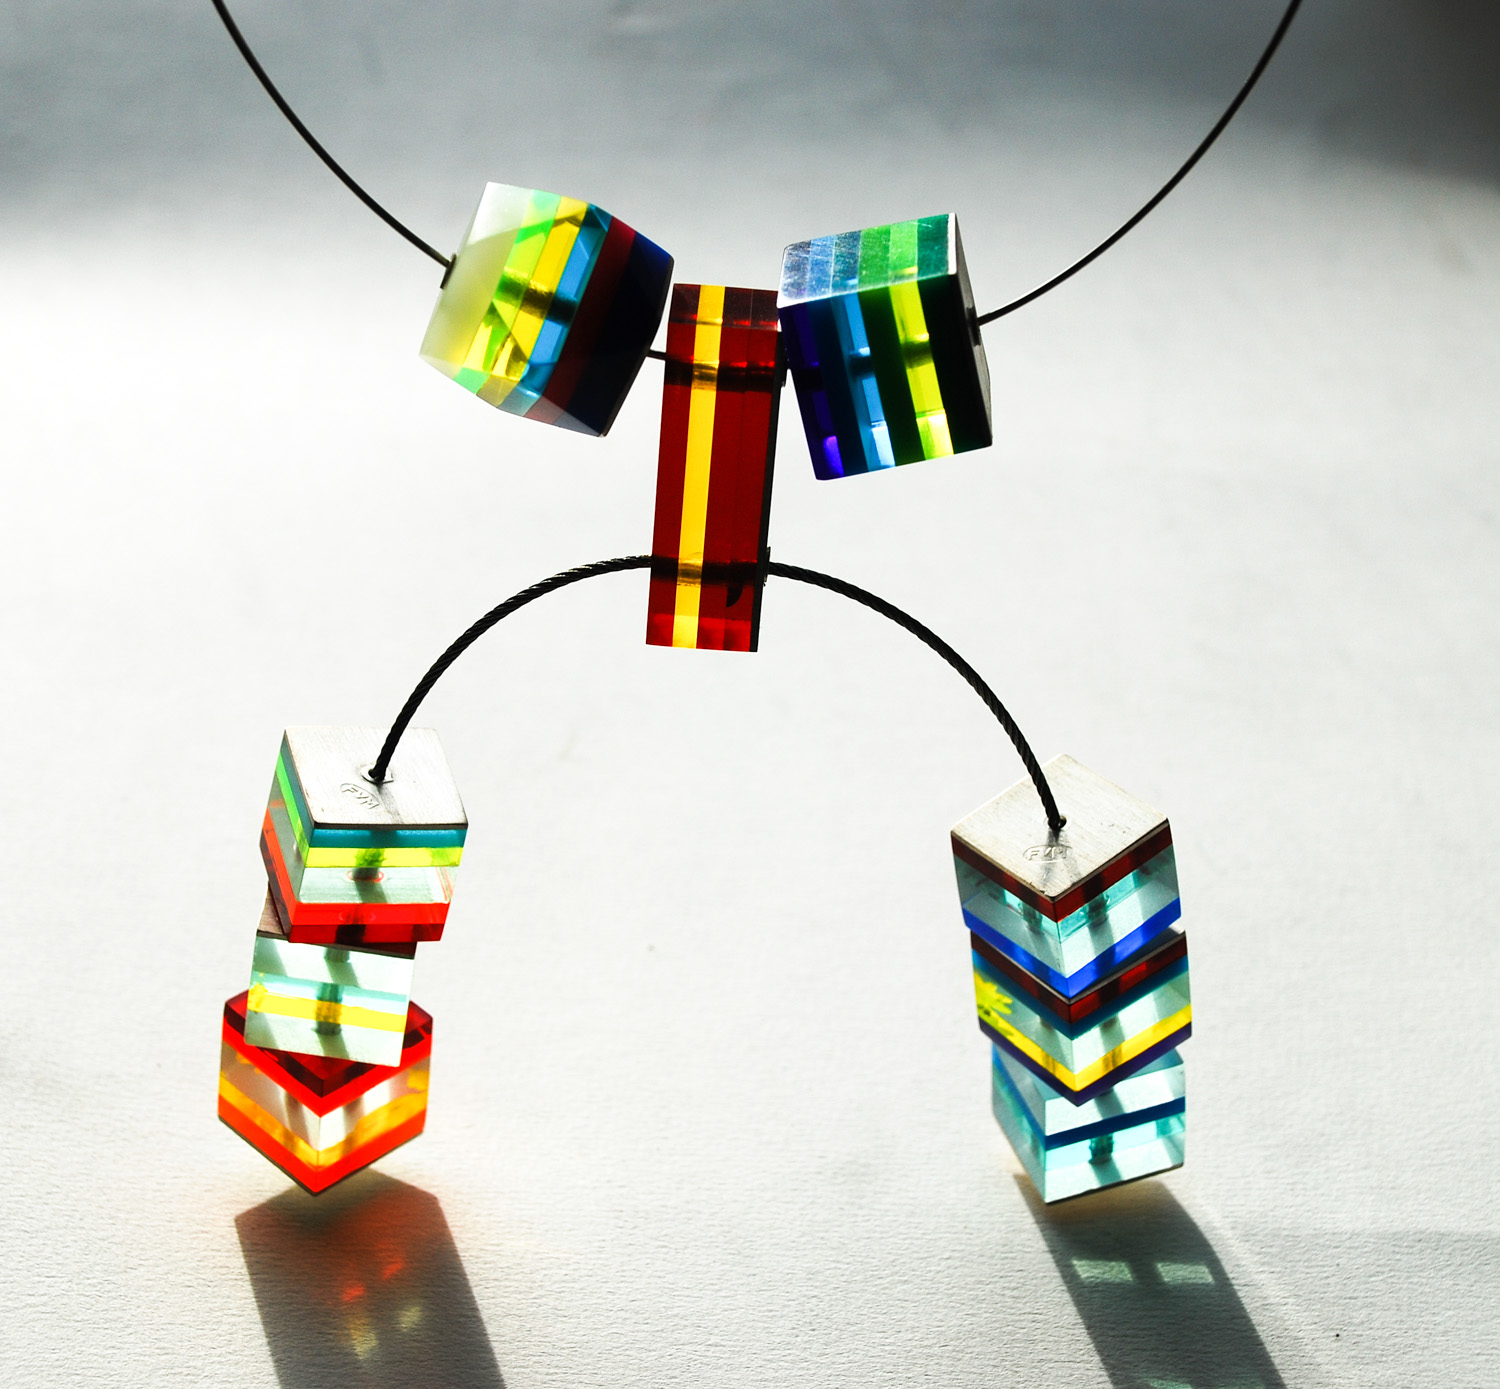 Statement Necklace with large cubes and hand carved Icosahedron form on silver choker + stainless steel wire. Price on application.